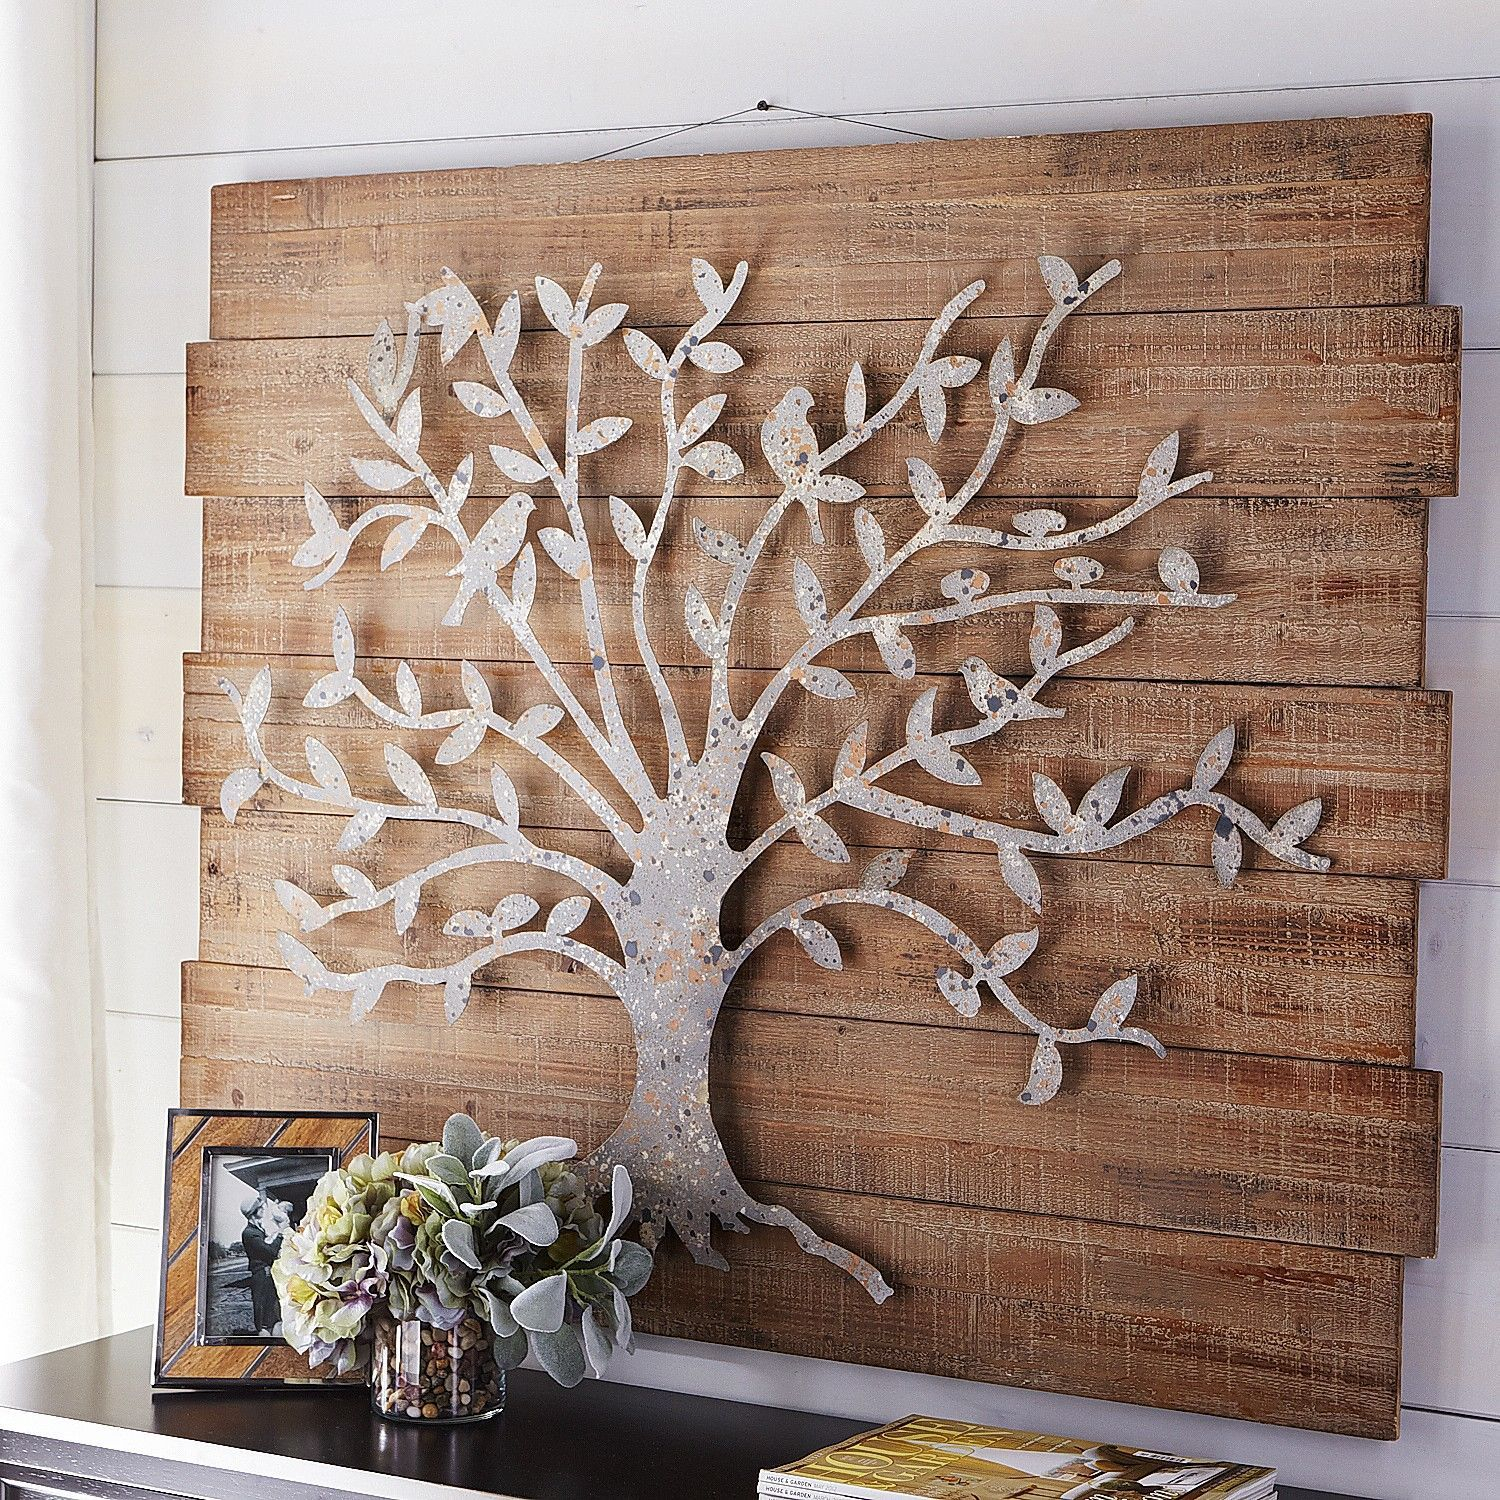 Timeless Tree Wall Decor | Pier 1 Imports … | Metal Work In in Ornamental Wood And Metal Scroll Wall Decor (Image 25 of 30)